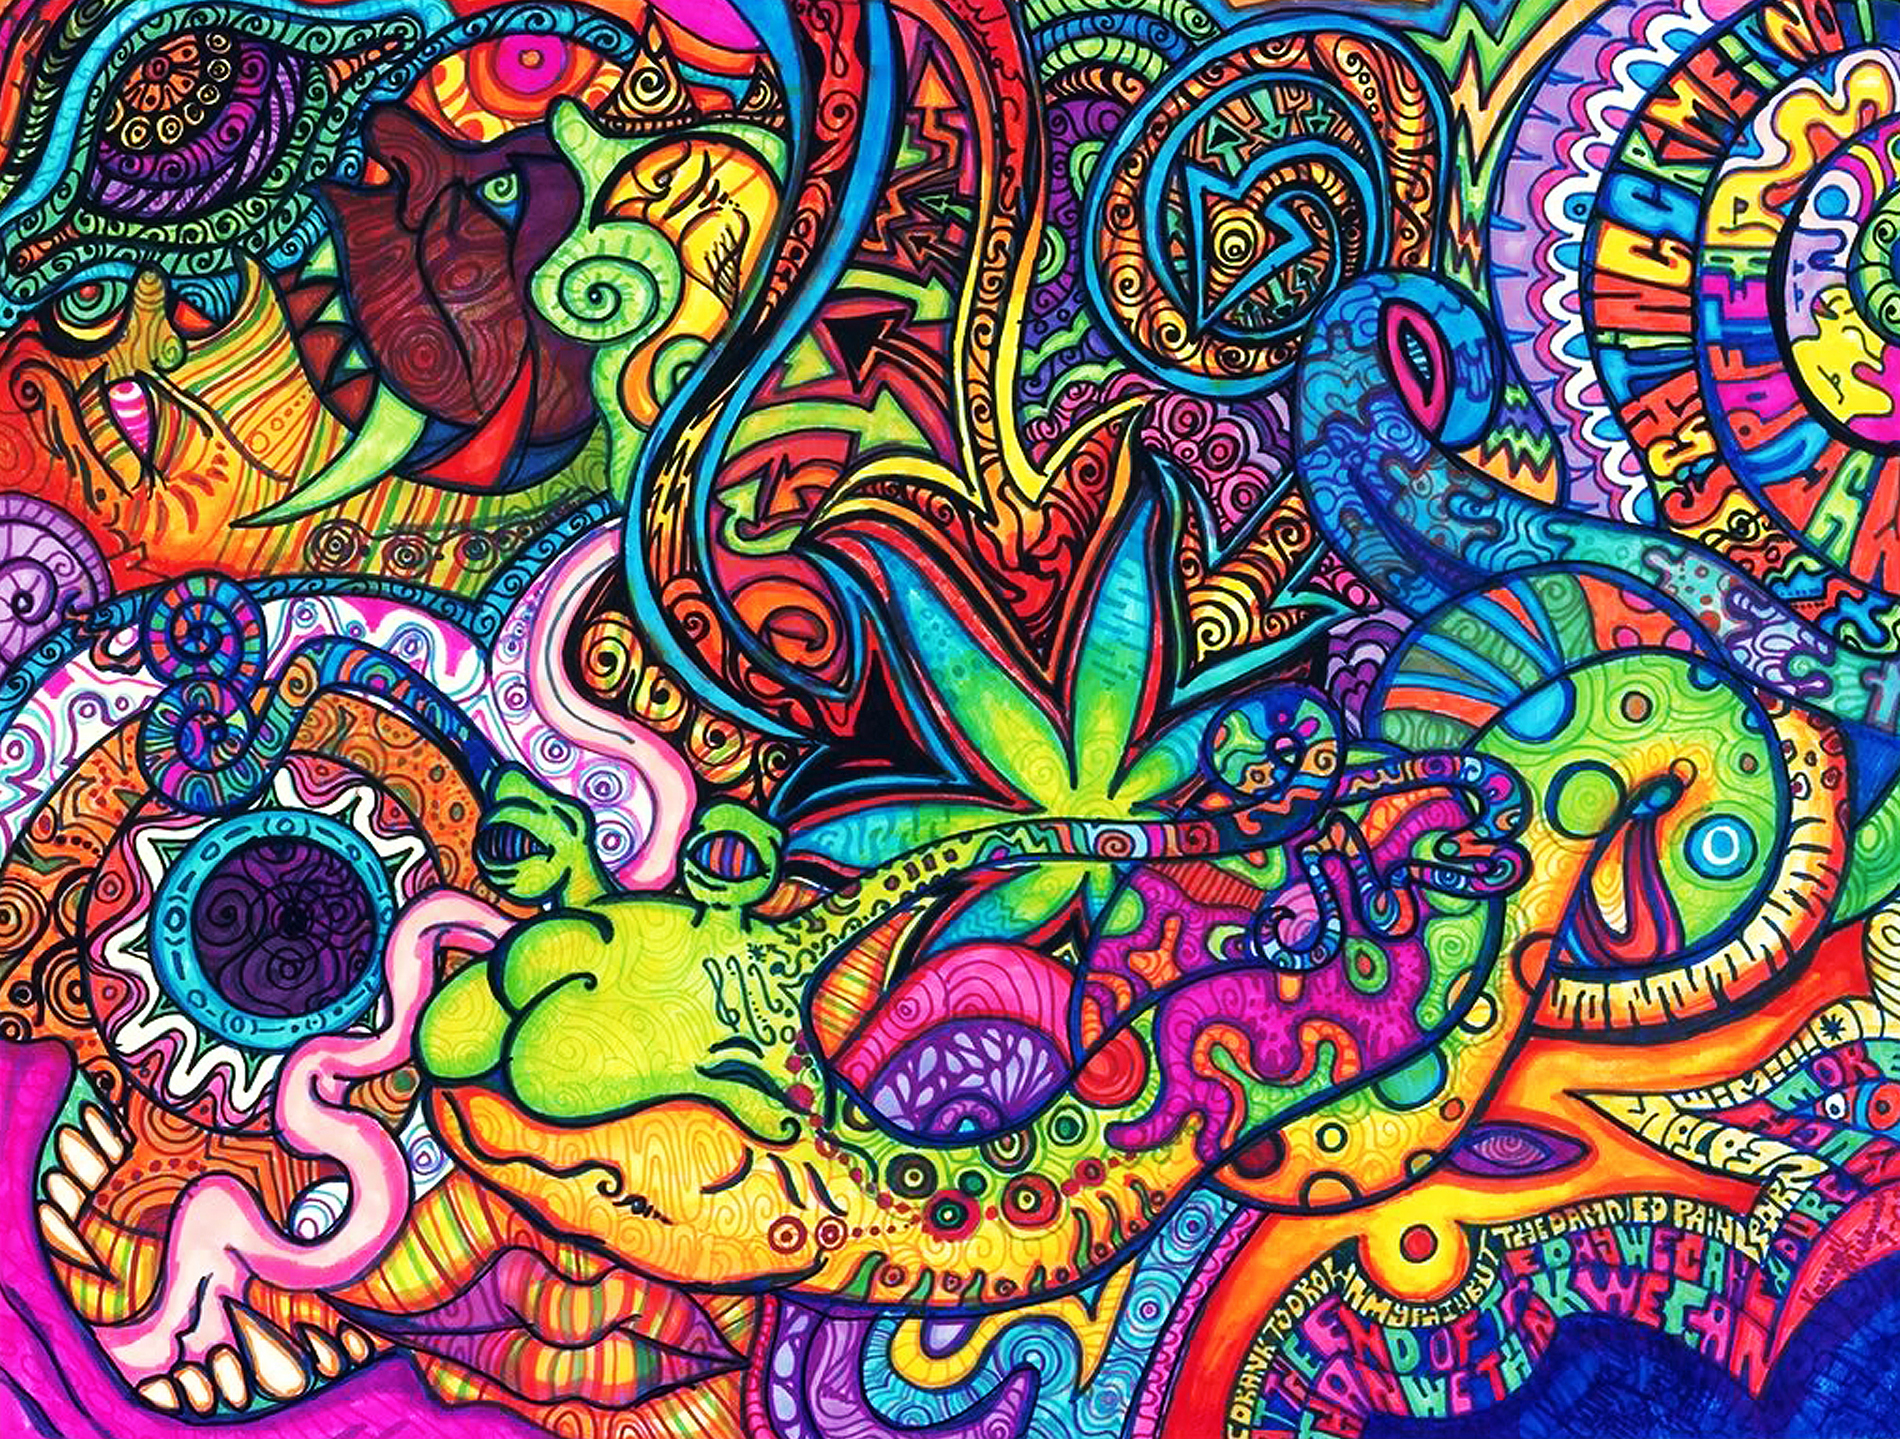 513 Psychedelic Hd Wallpapers Background Images